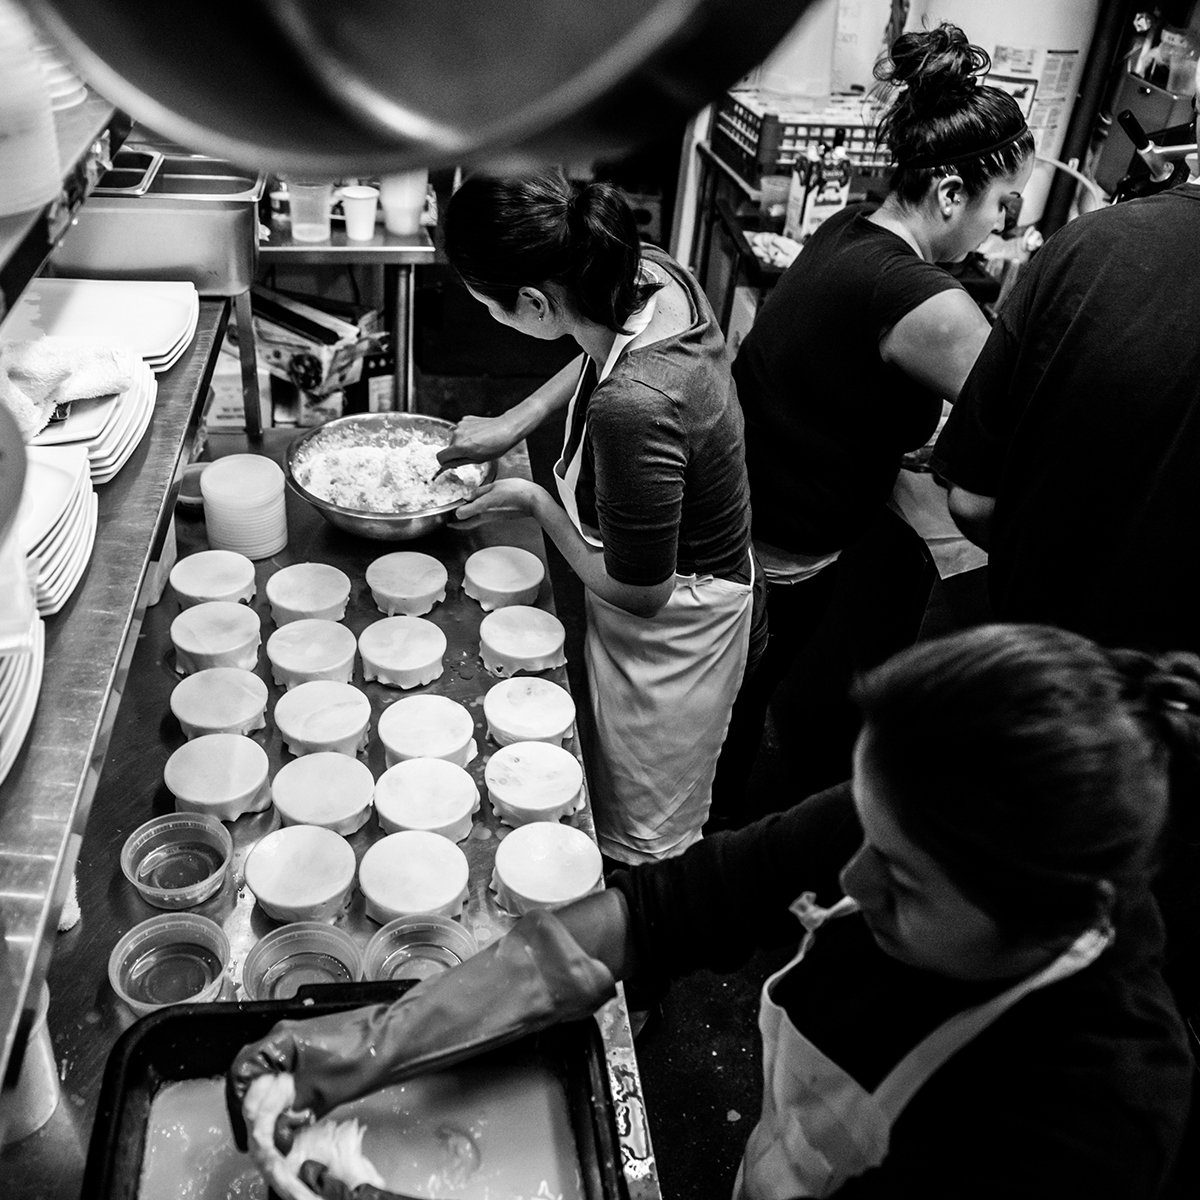 Black and white photograph of working in a restaurant kitchen